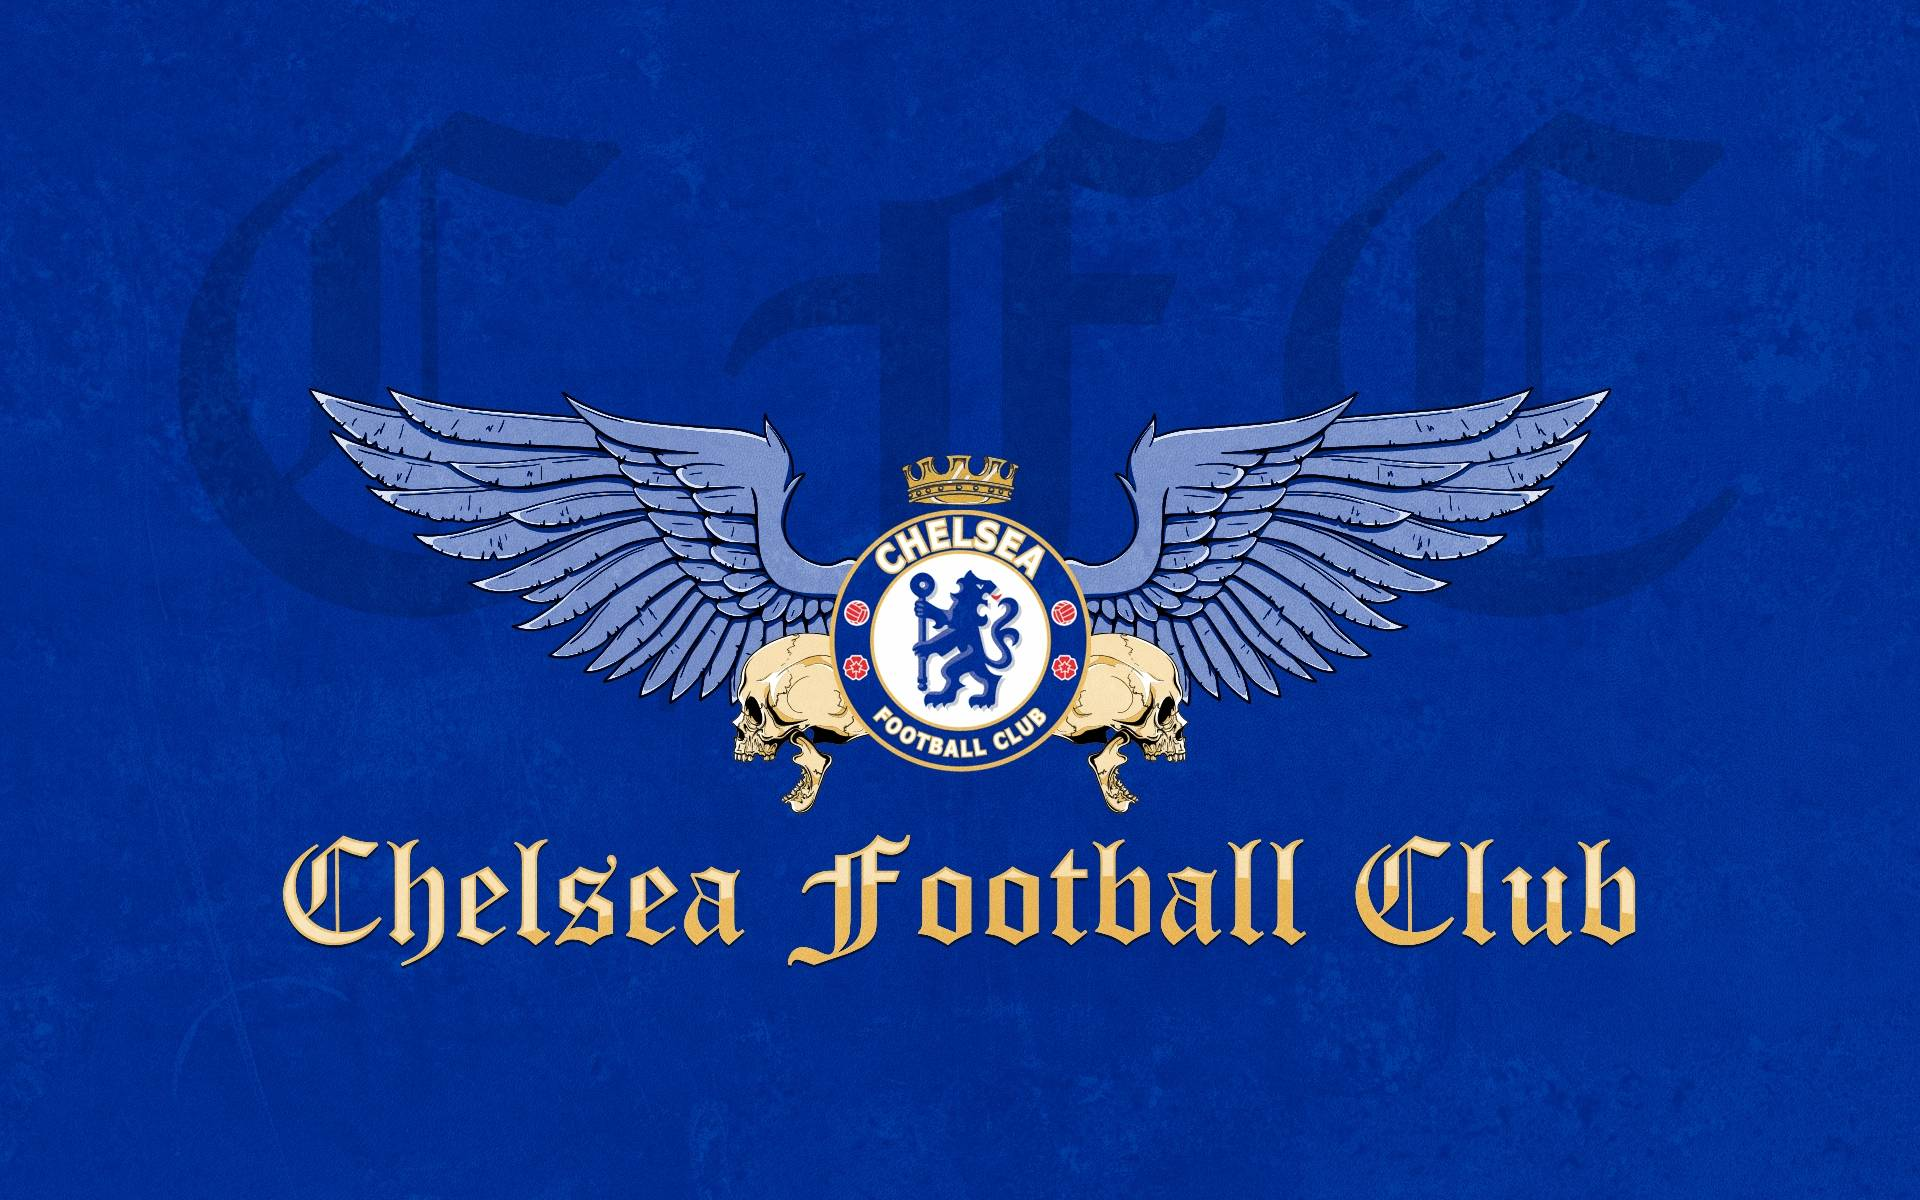 Chelsea football club wallpapers wallpaper cave chelsea blue football club wallpaper for andro 8620 wallpaper voltagebd Gallery